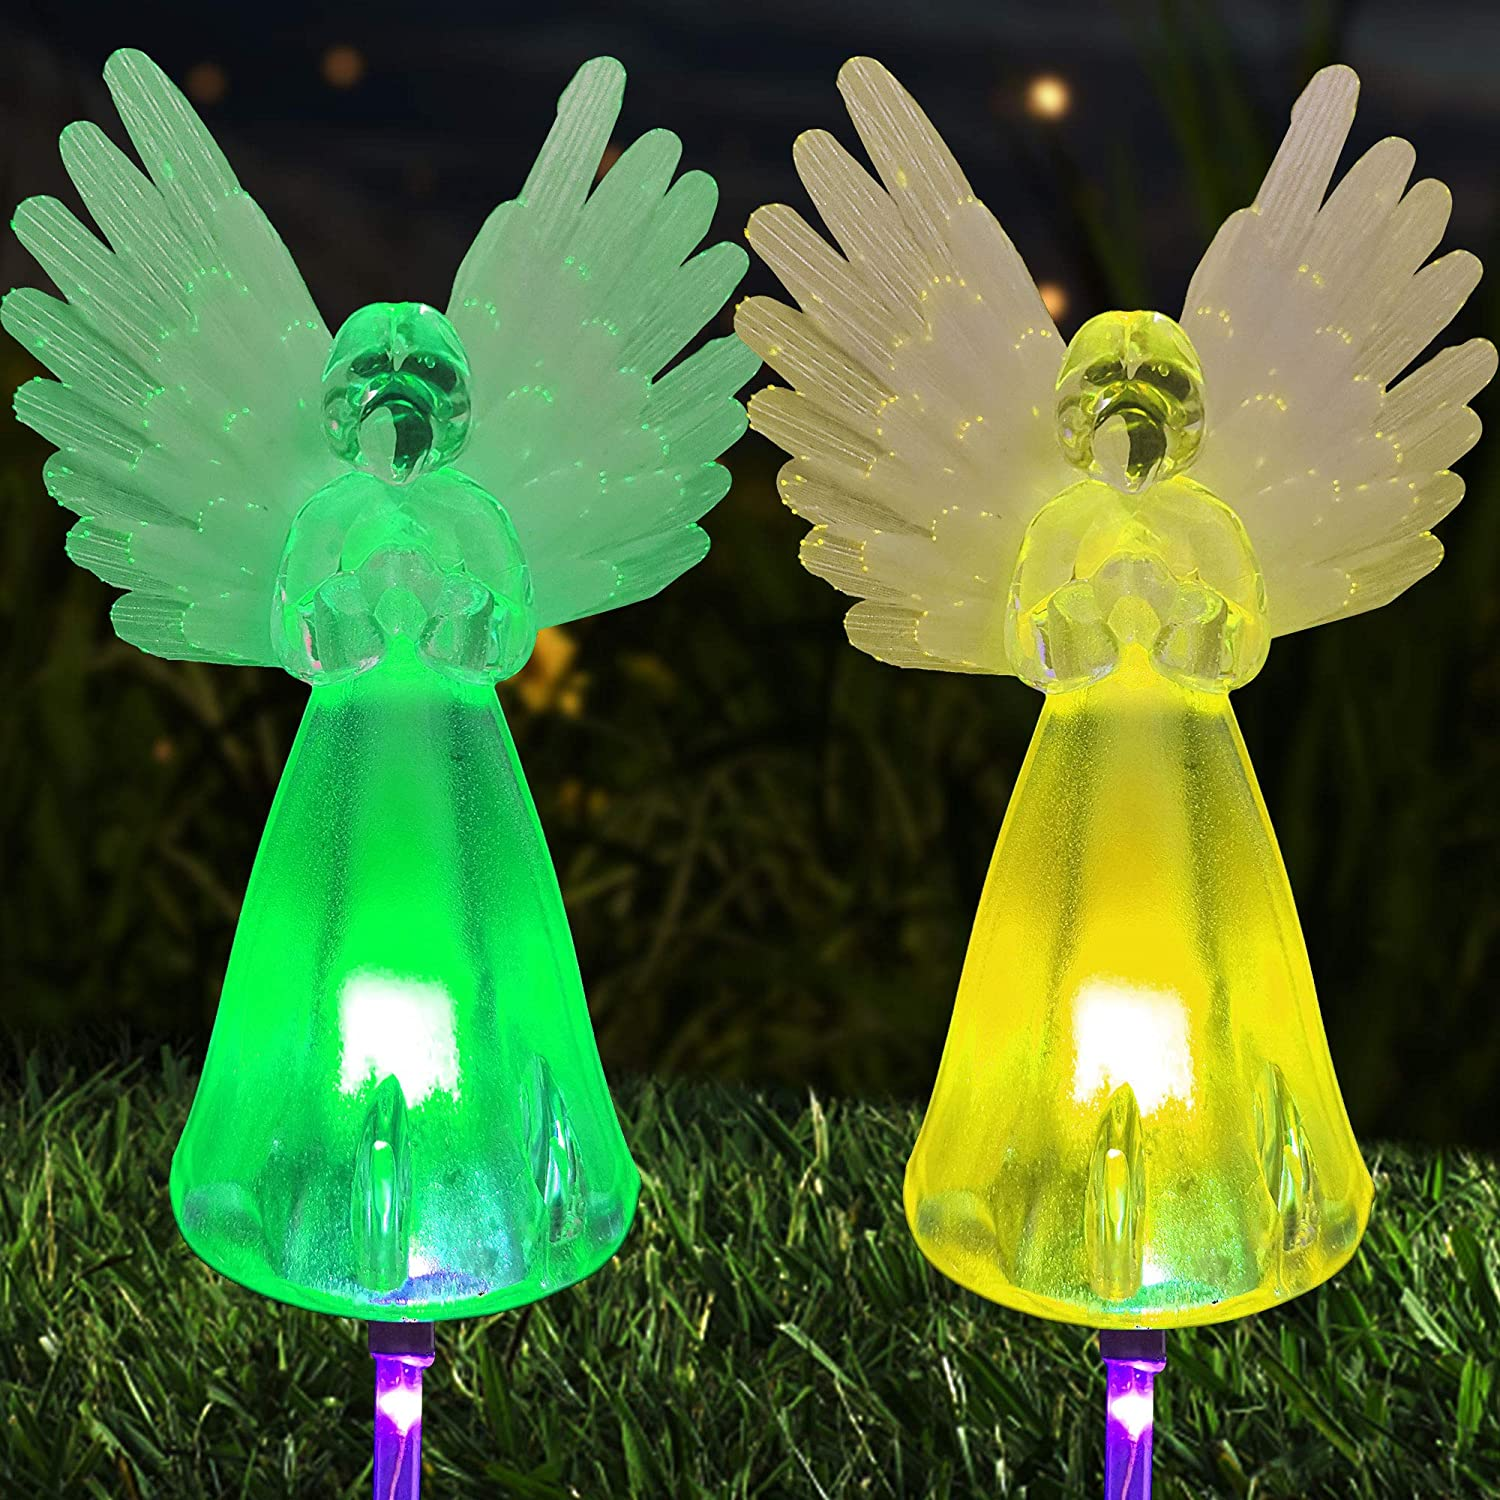 zhengshizuo 2Pcs Solar LED Outdoor Christmas Decor Christmas Lights Memorial Angel Light Garden Stake Outdoor In-Ground Lights Outdoor Cemetery Grave Angels Statue Angel Landscape Path Lights